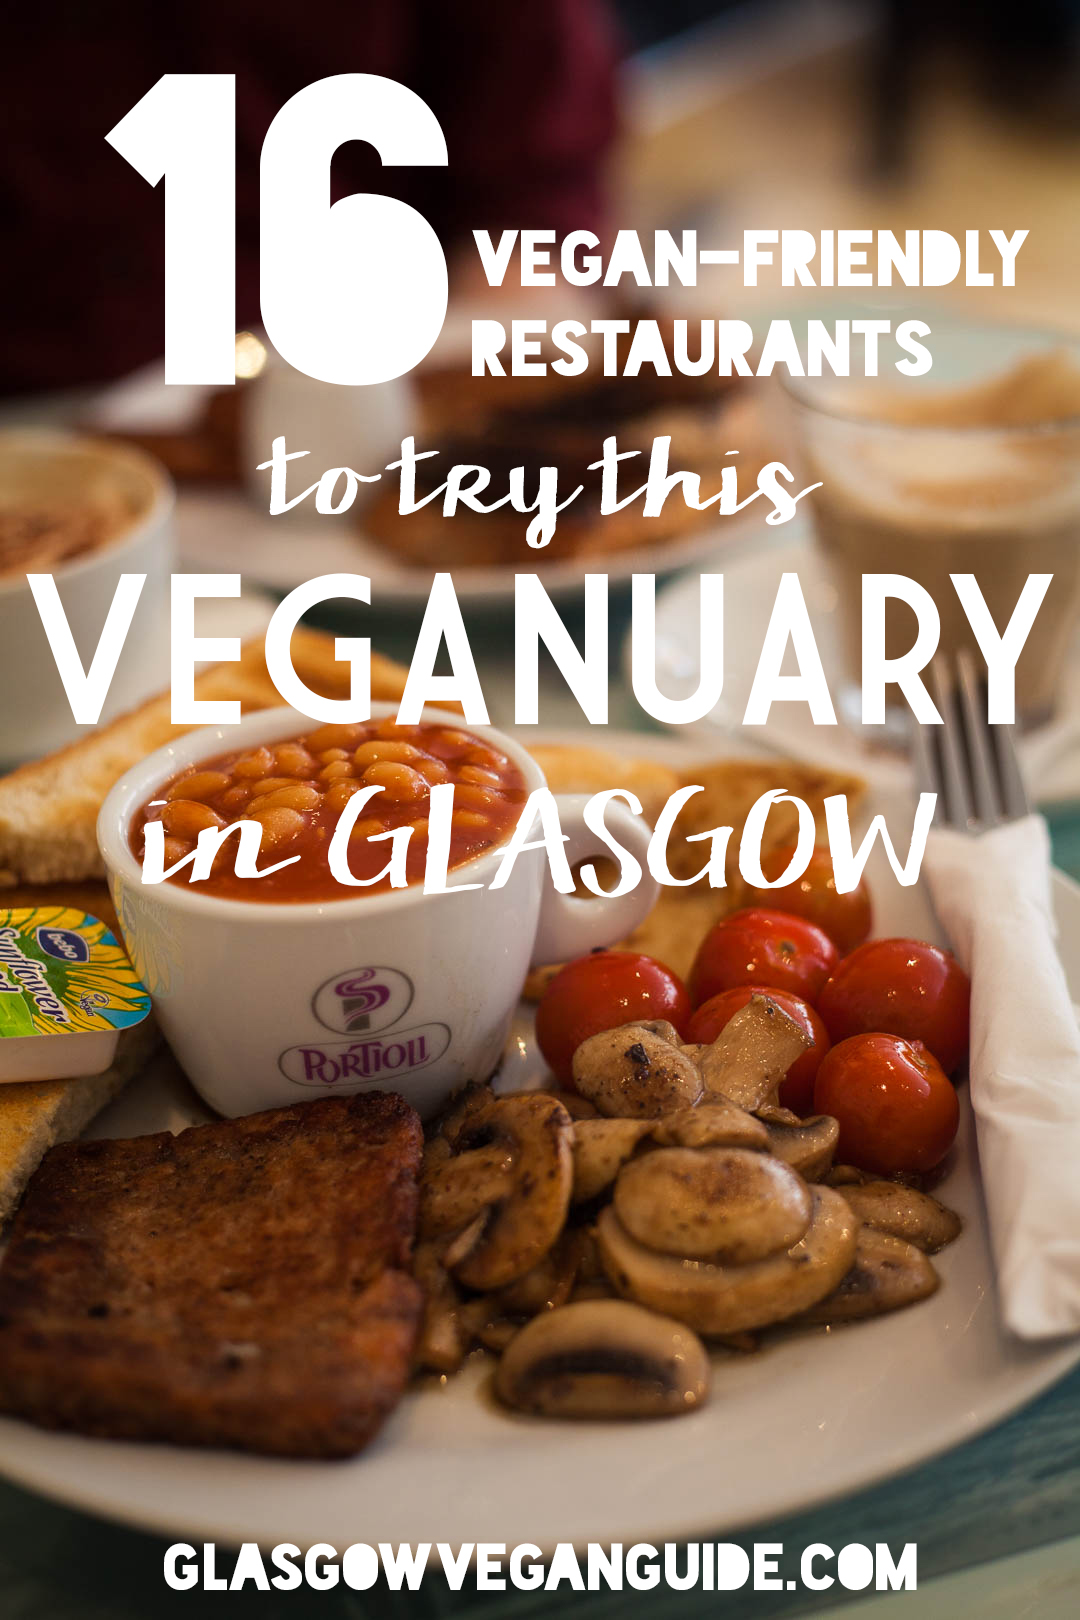 Veganuary is all about trying new things, making more conscious decisions about what to eat and experiment with foods that most people consider only to be side dishes. Here are 16 vegan restaurants in Glasgow you should try this Veganuary to see that it is actually easy and tasty to be a vegan in Glasgow!